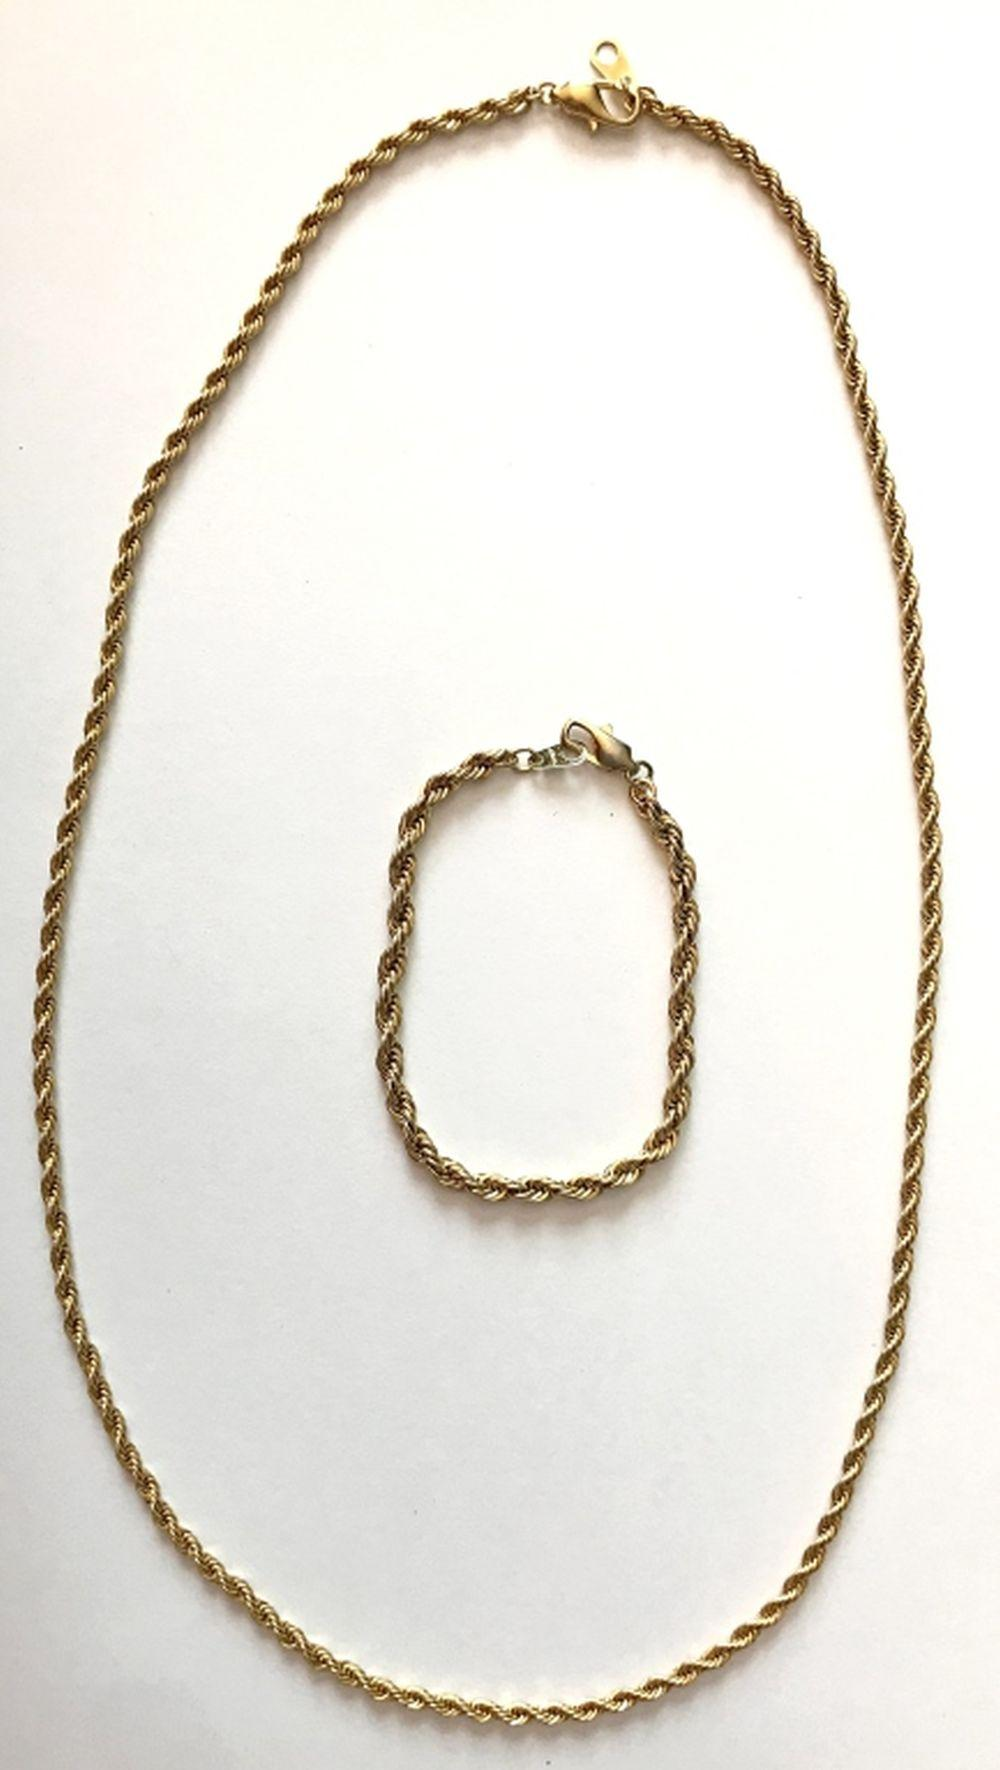 14K ROLLED GOLD PLATE NECKLACE/ CHAIN